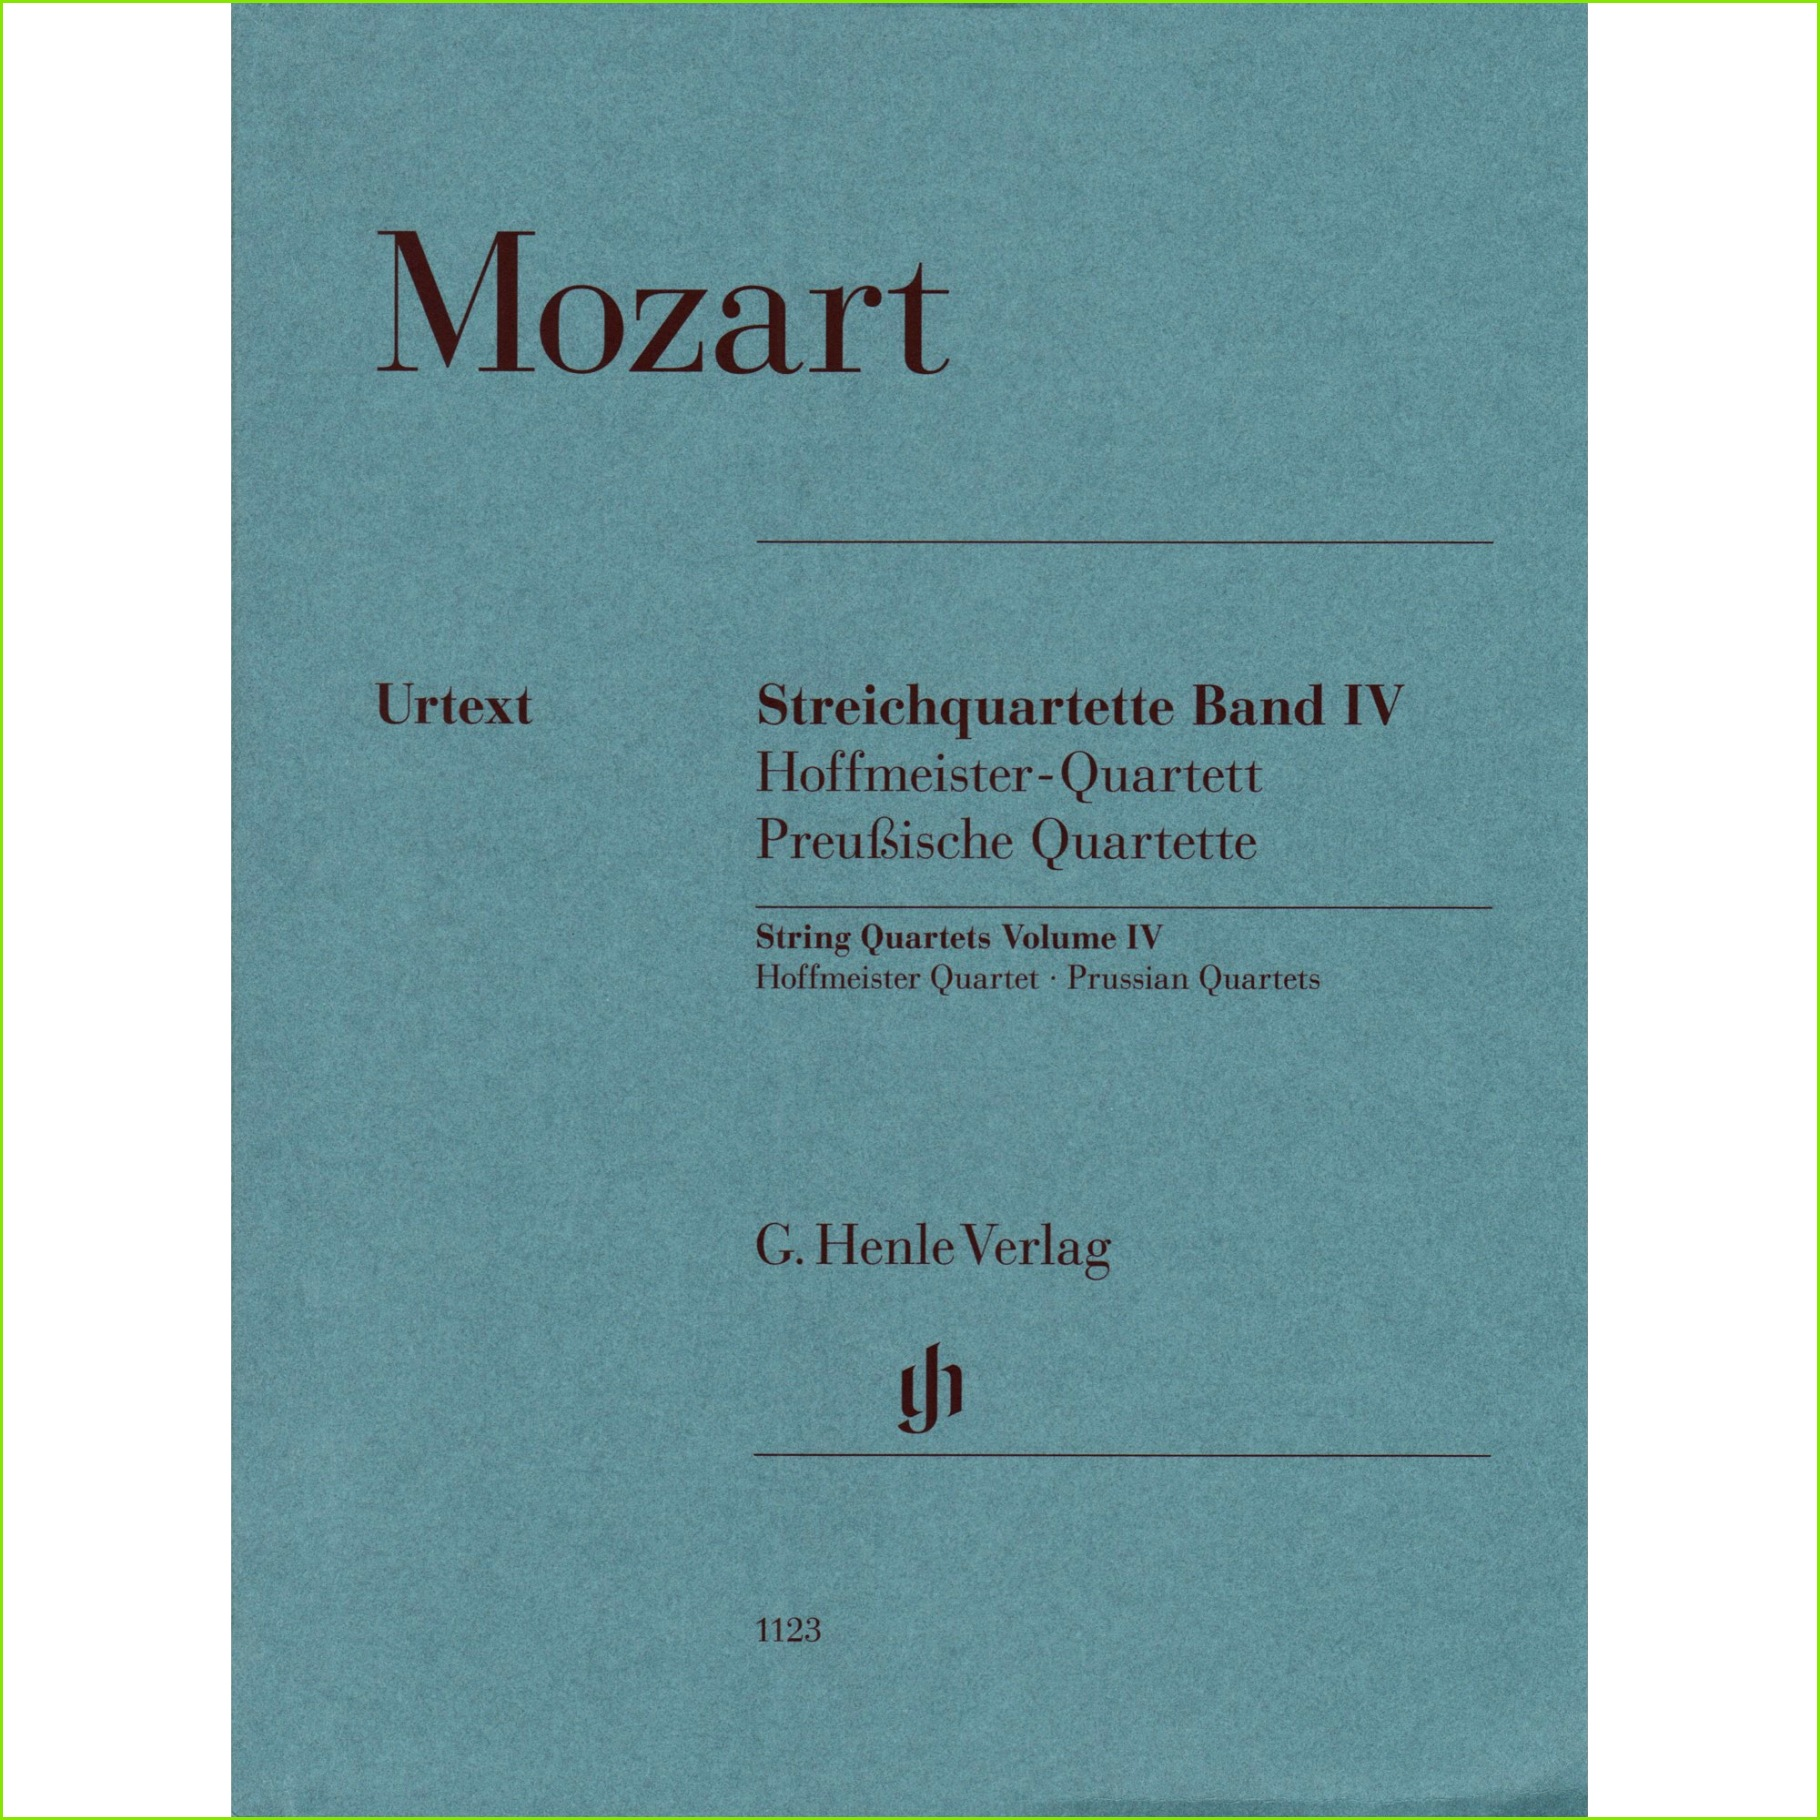 Mozart W A String Quartets Volume IV The Hoffmeister and Prussian Quartets